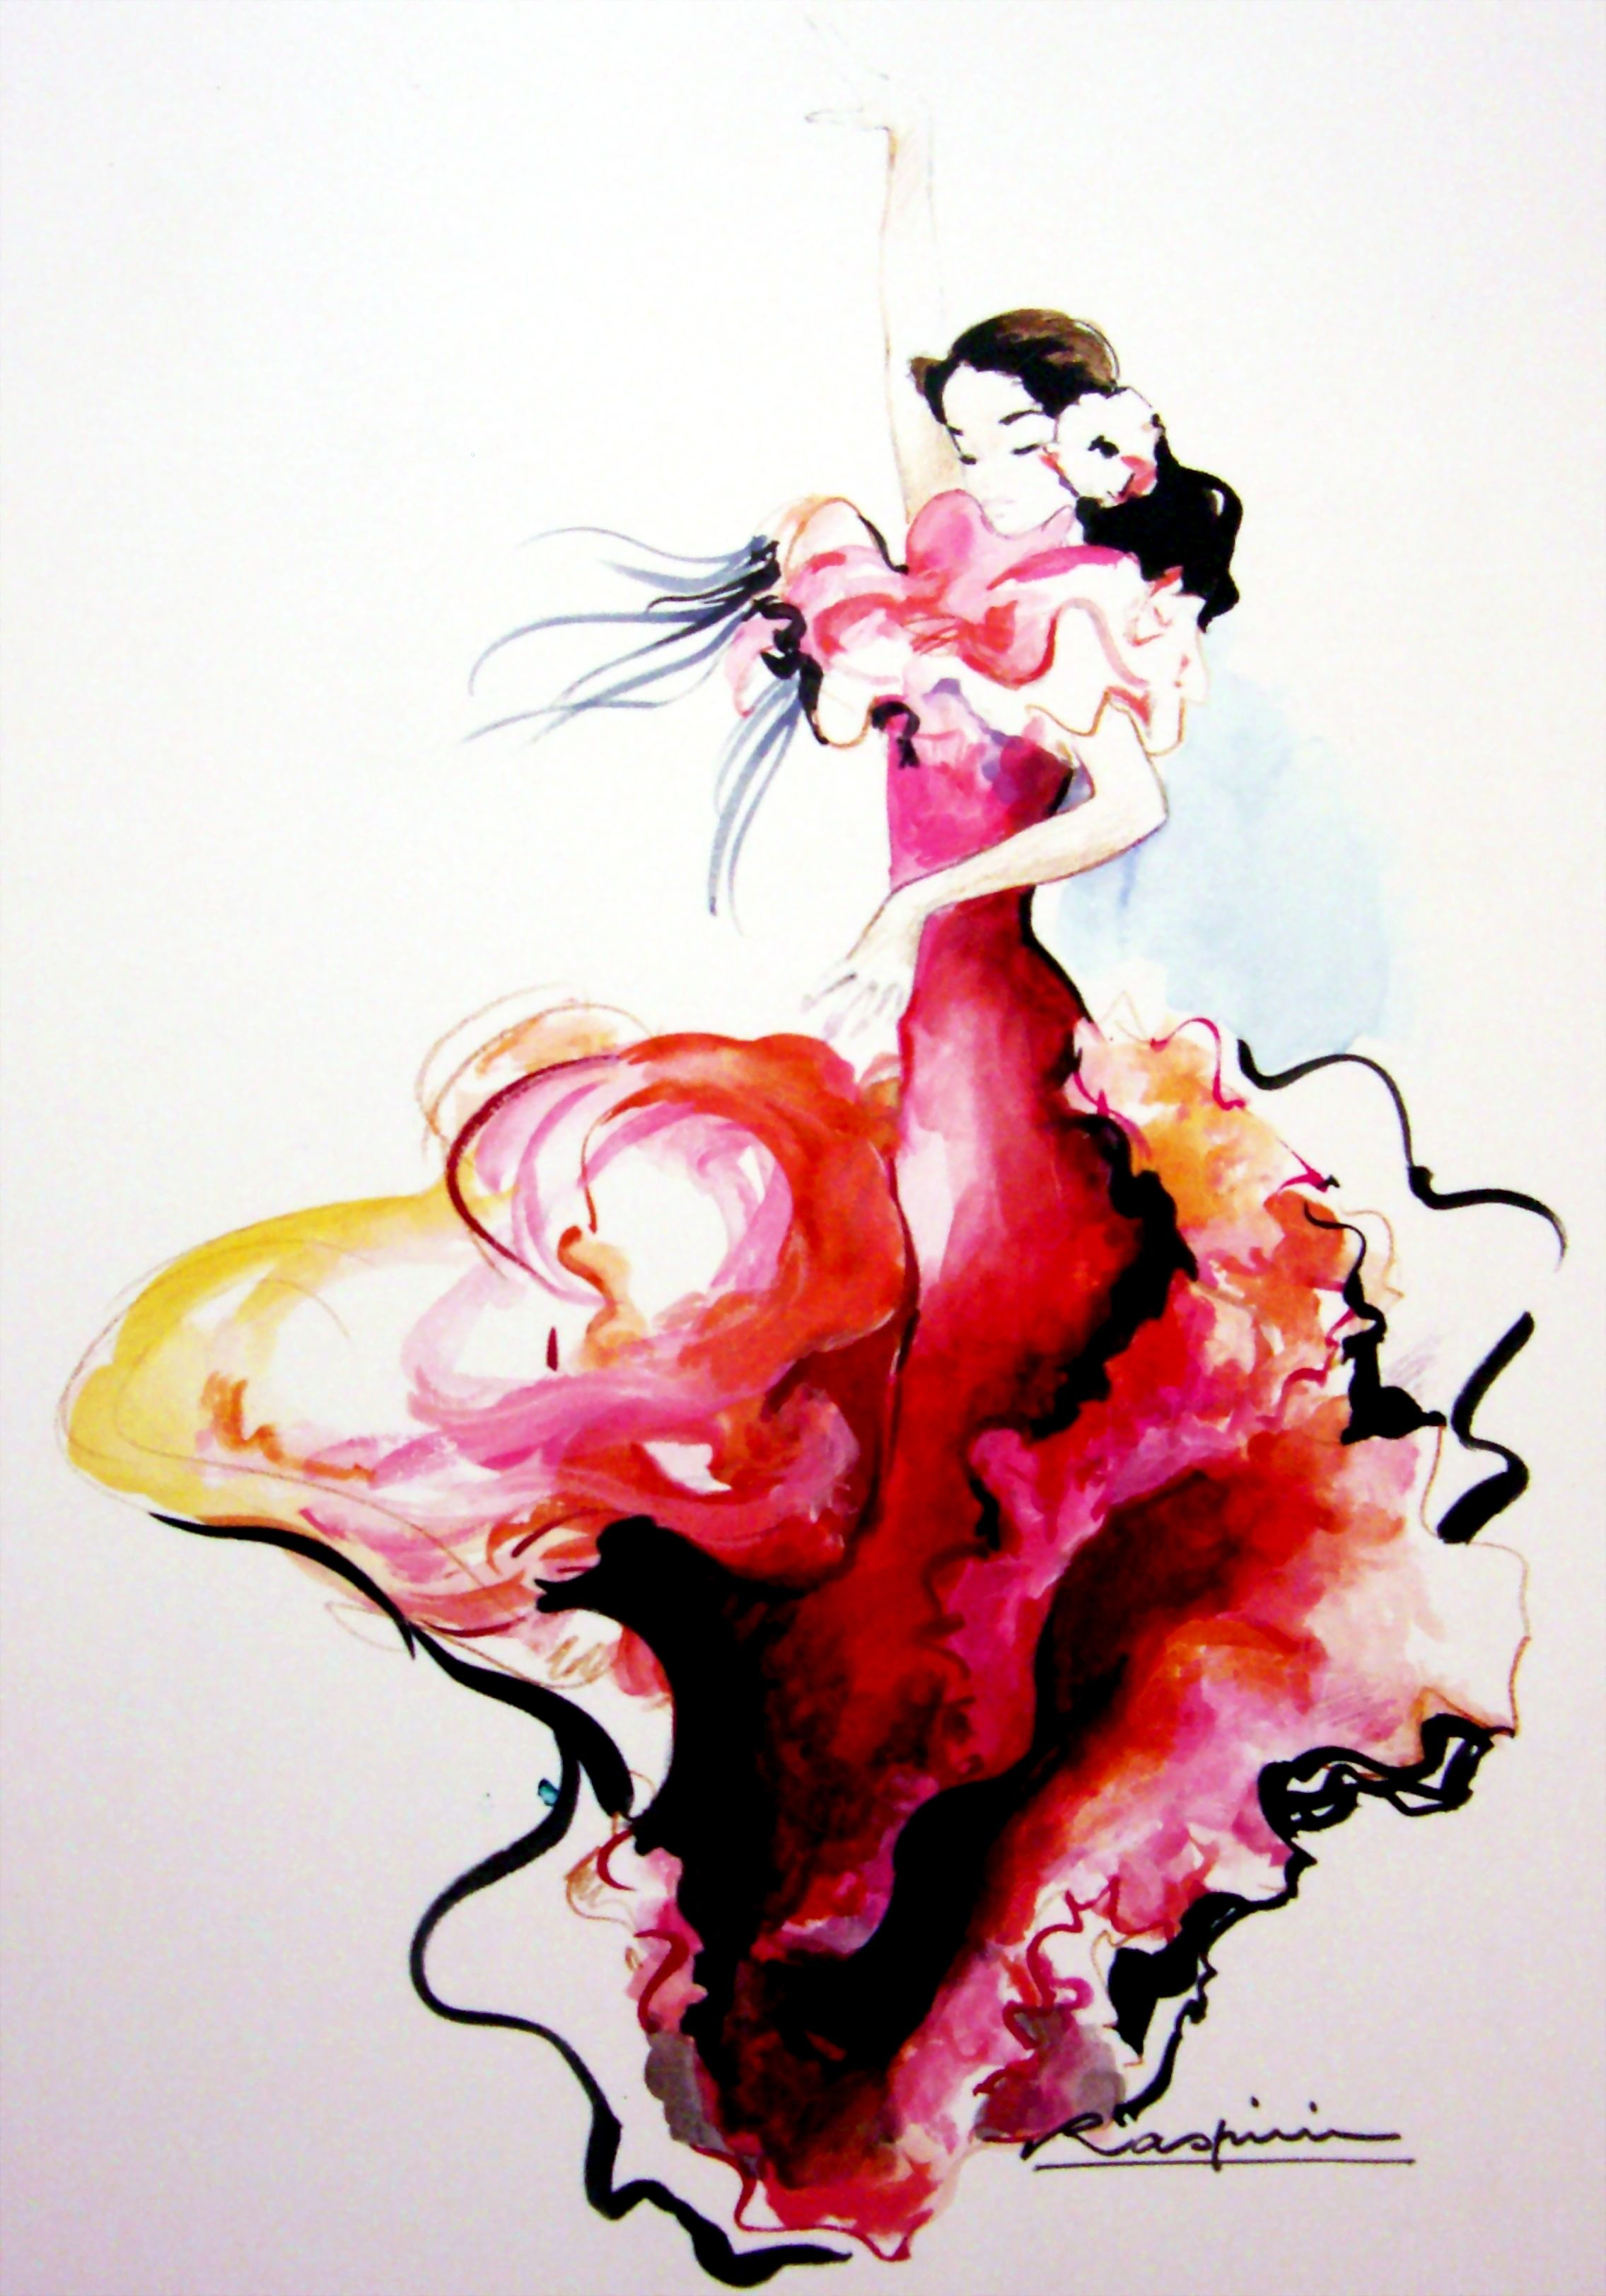 Sevillana In The Orchid Dress Danseuse De Flamenco Danseuse